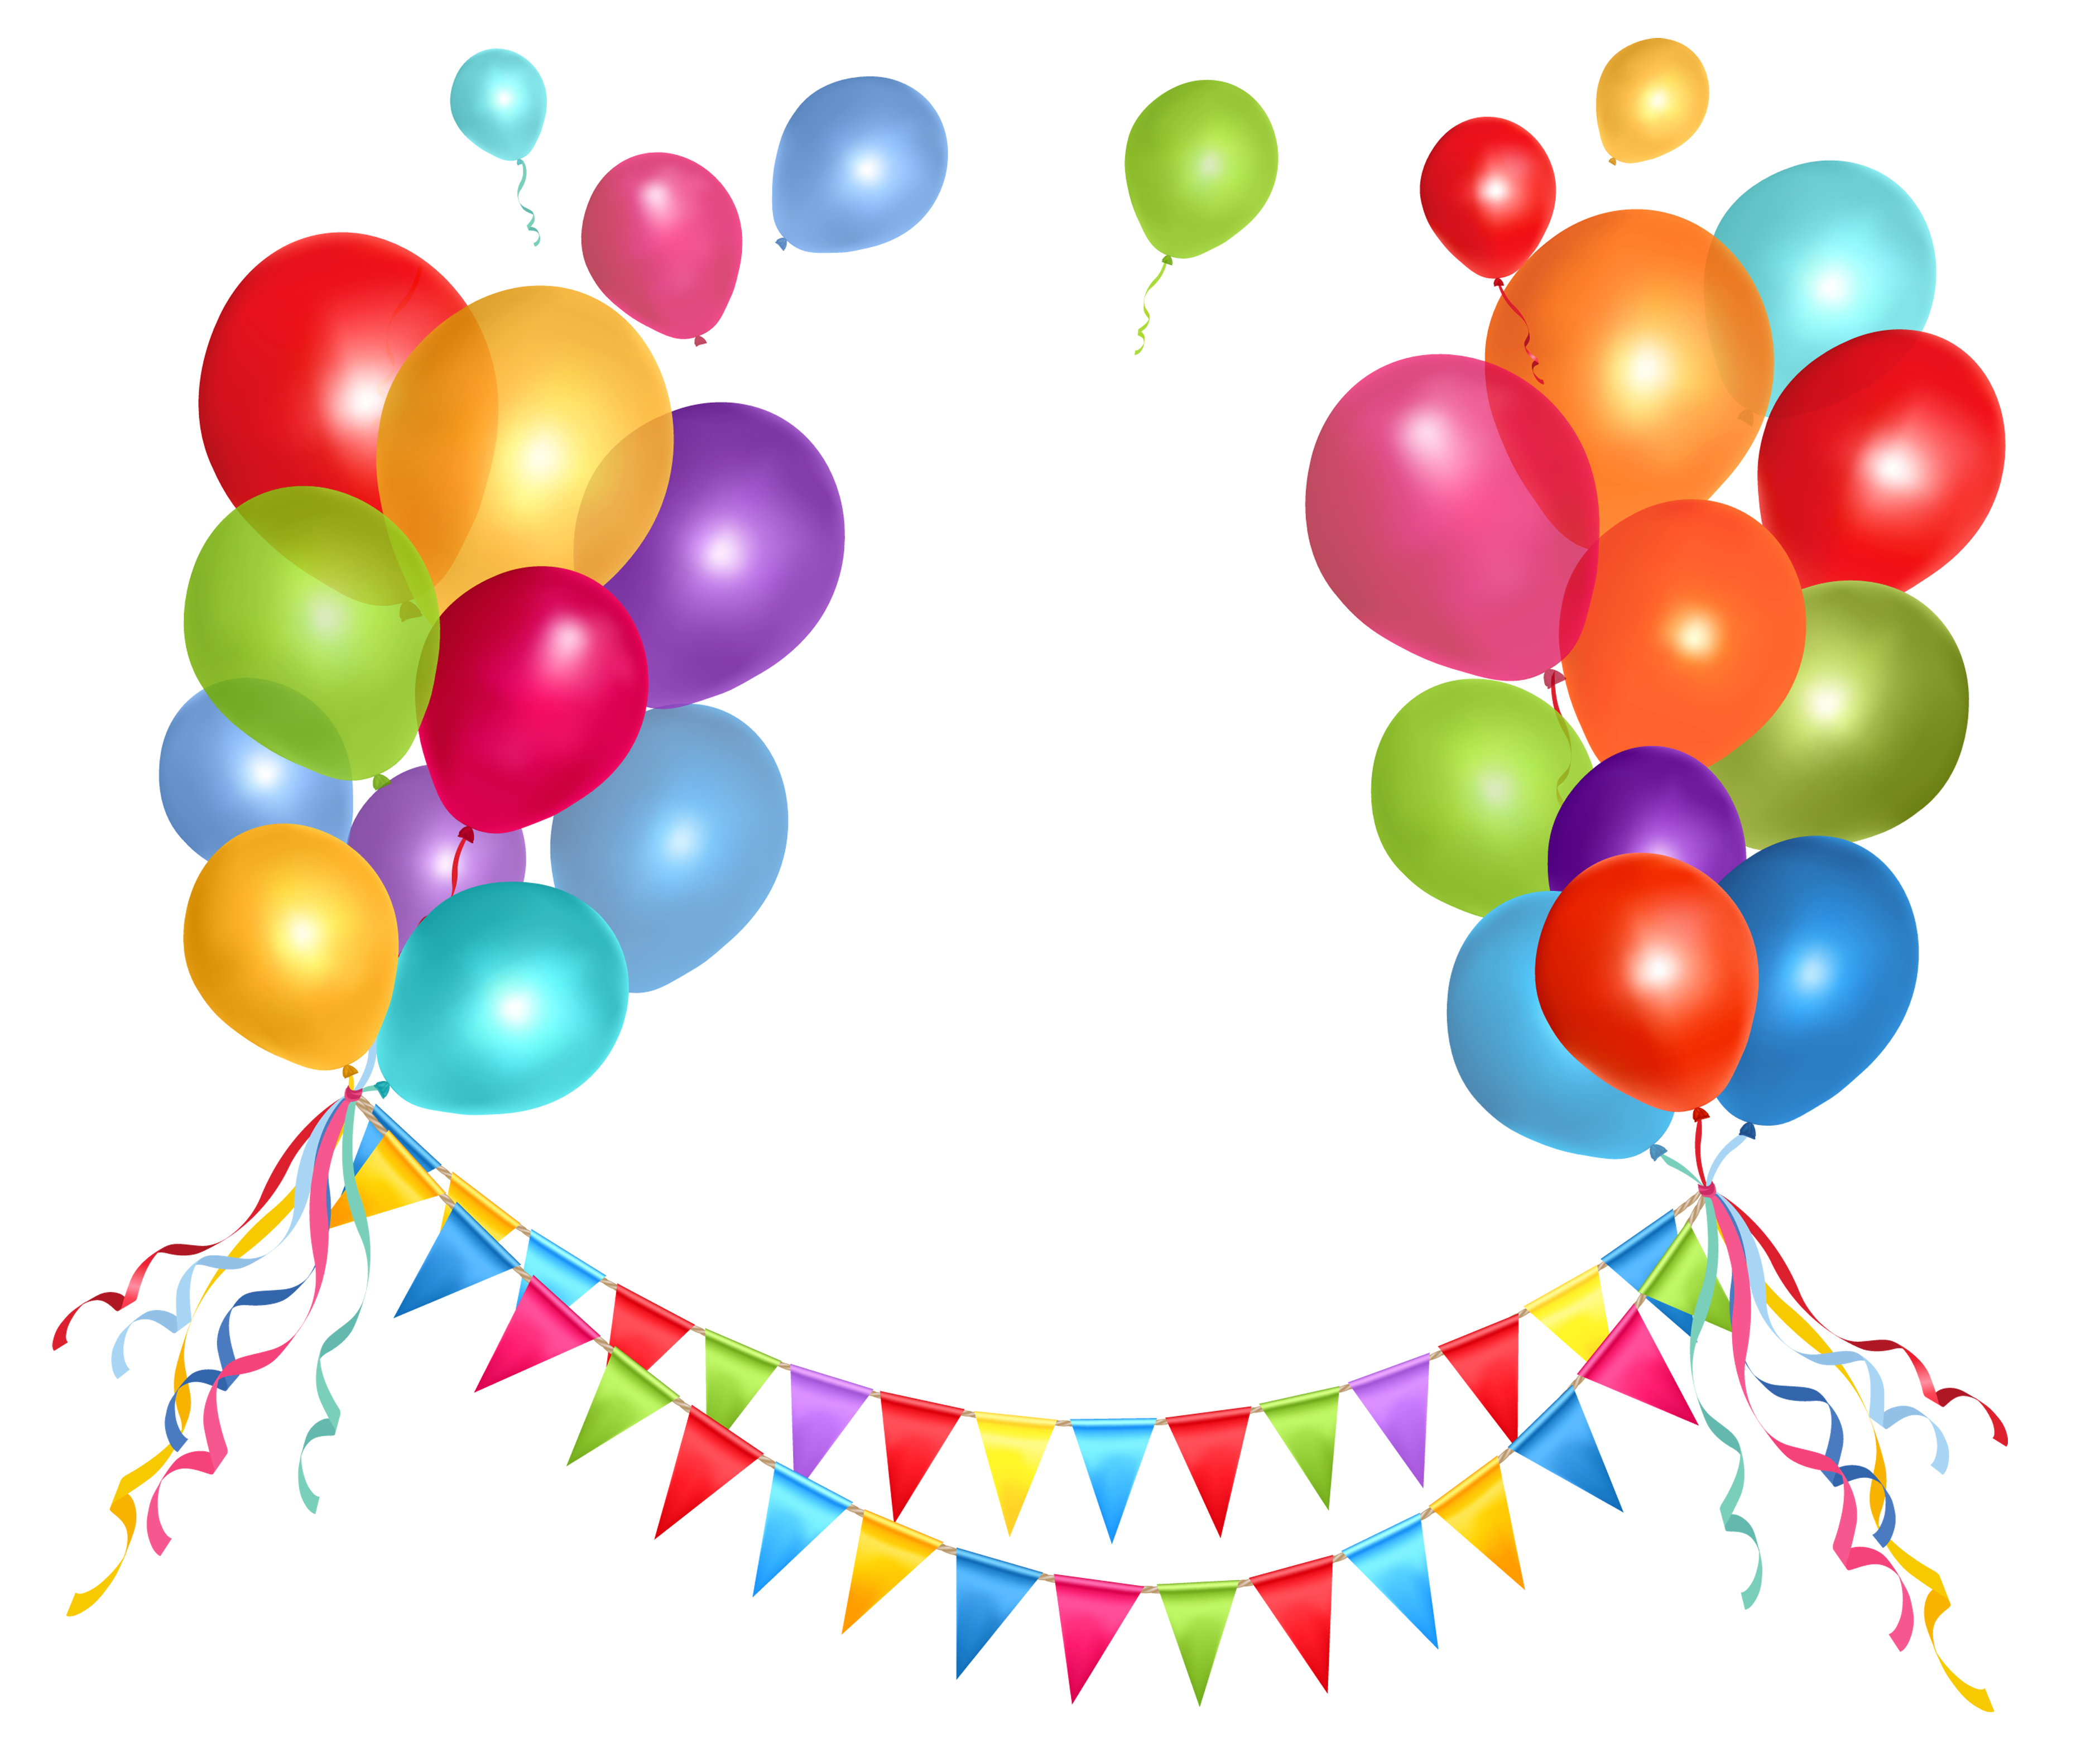 Transparent Party Streamer and Balloons PNG Clipart Picture.